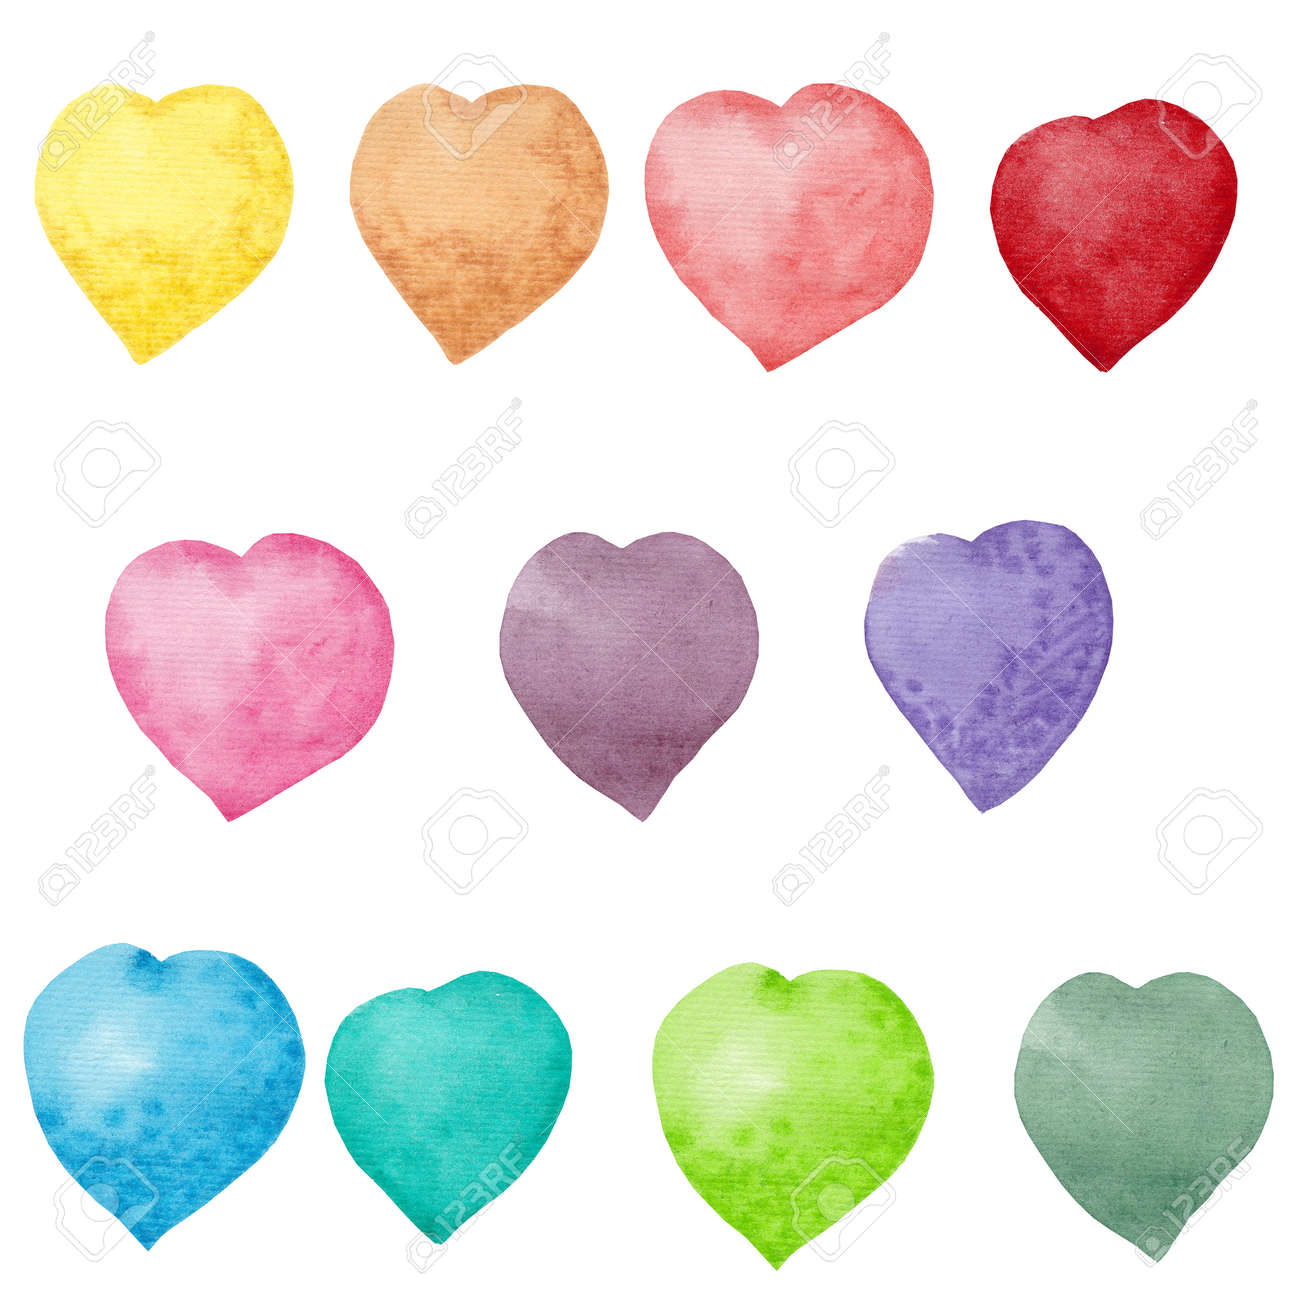 Watercolor rainbow hearts. Hand drawn. Set of party green, pink, blue, yellow, purple, red hearts isolated on white background. Colorful object for greeting cards, invitation and other yours designs. - 150666099